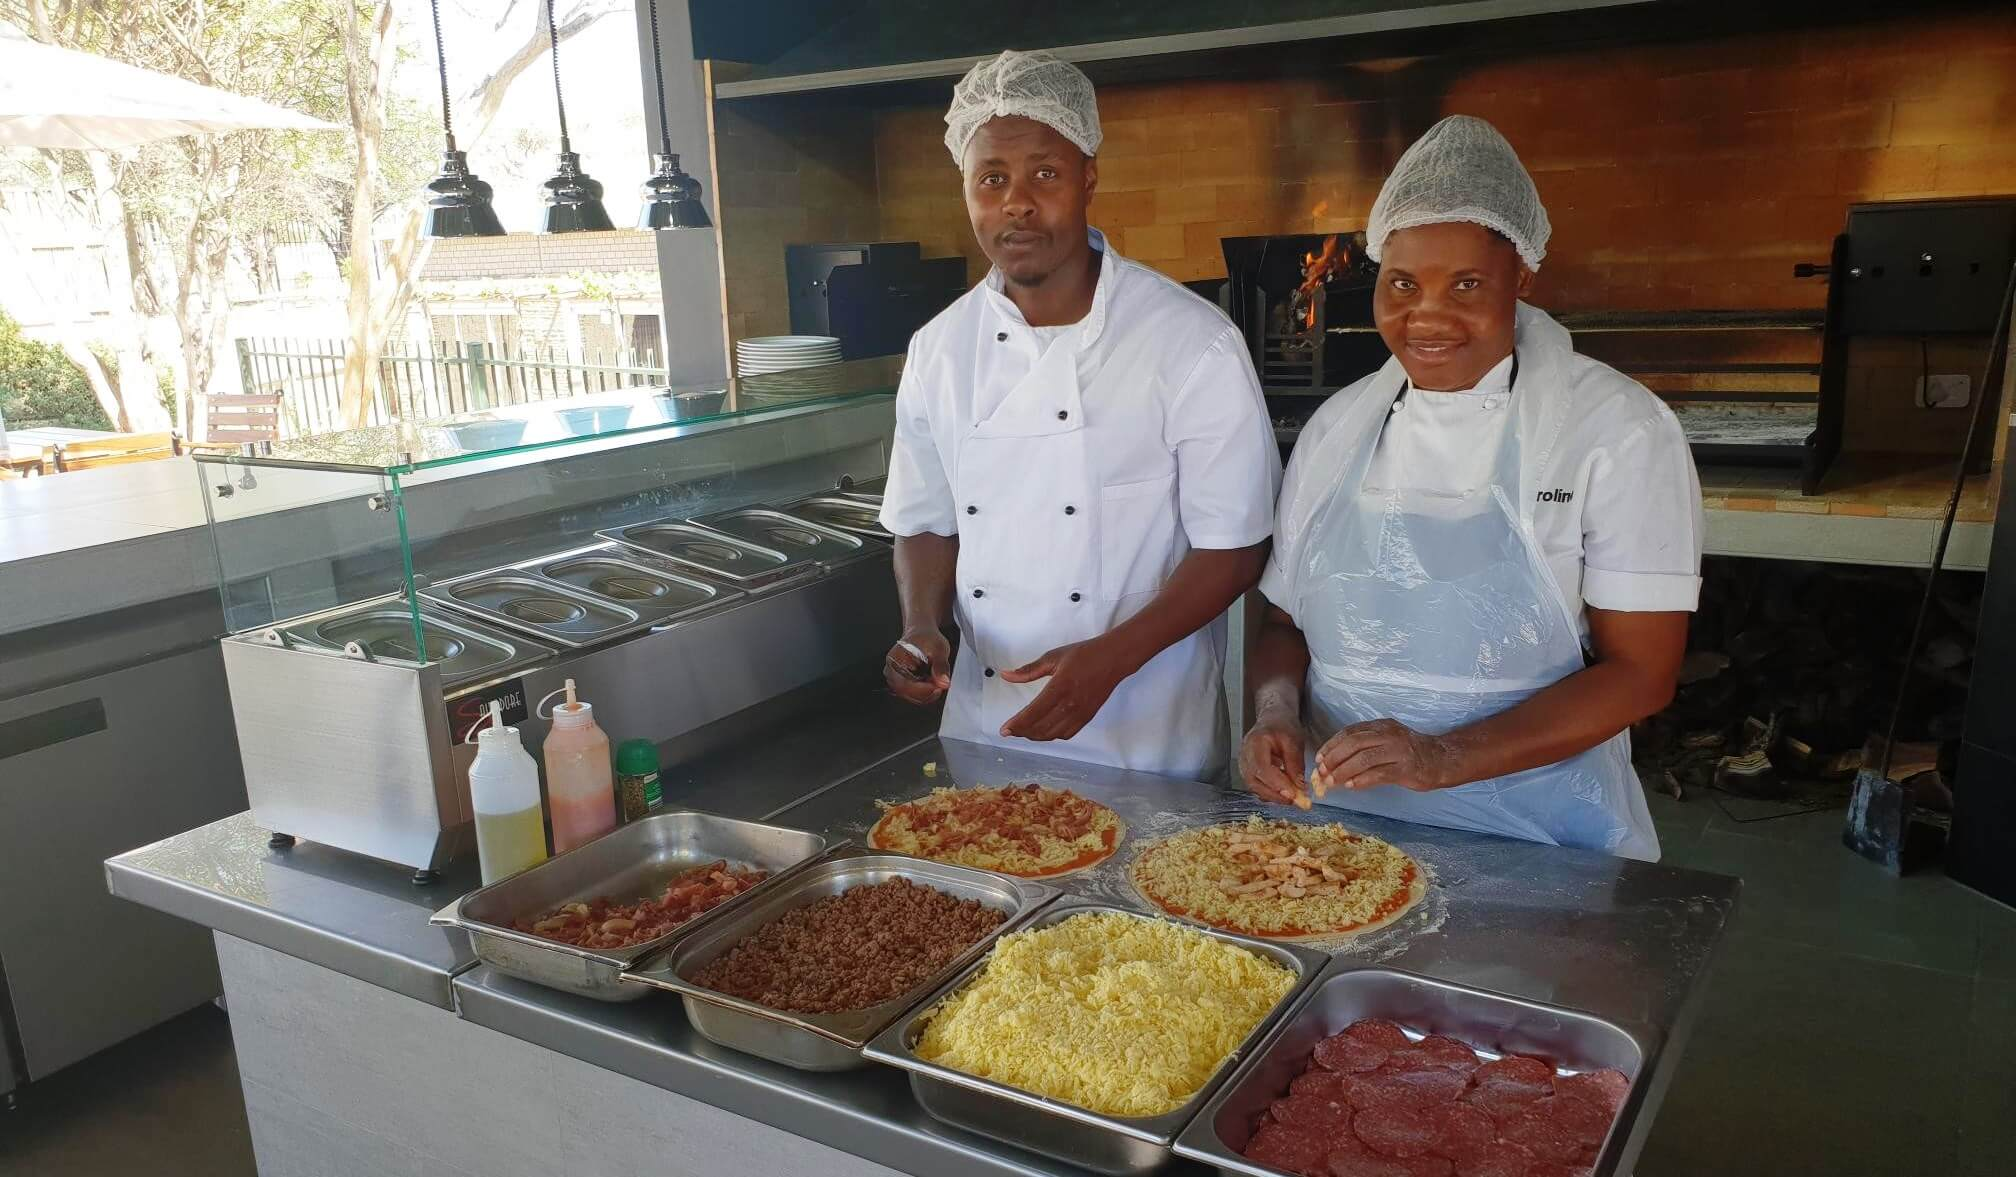 Arebbusch Travel Lodge Pizzeria & Grill   Pizzeria & Grill in Windhoek, Namibia